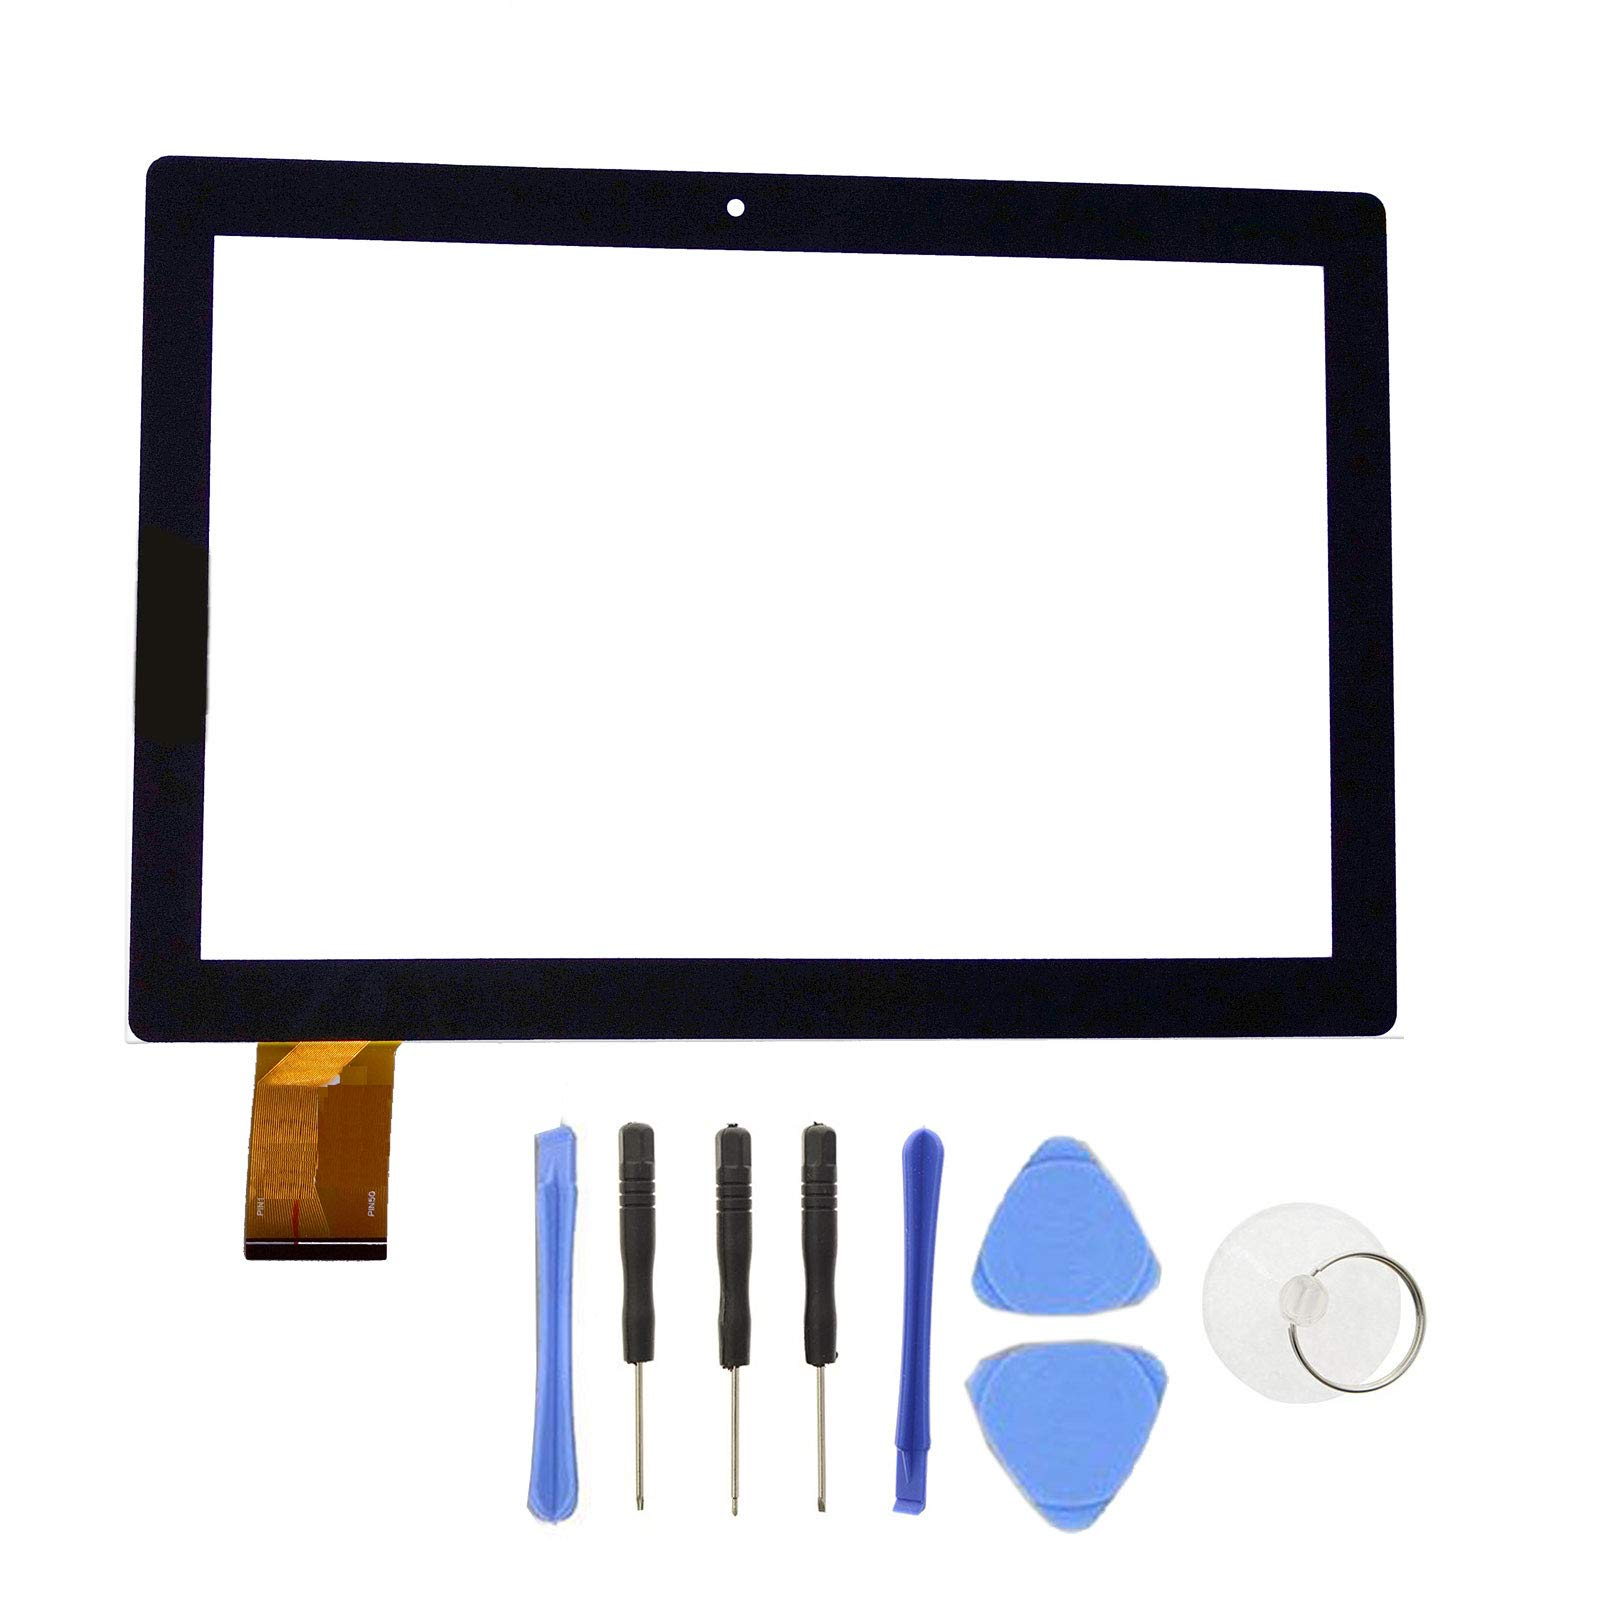 EUTOPING R Touch Screen Panel digitizer Replacement for 10.1 inch Digiland DL1016 with SlyPry Opening Tool kit